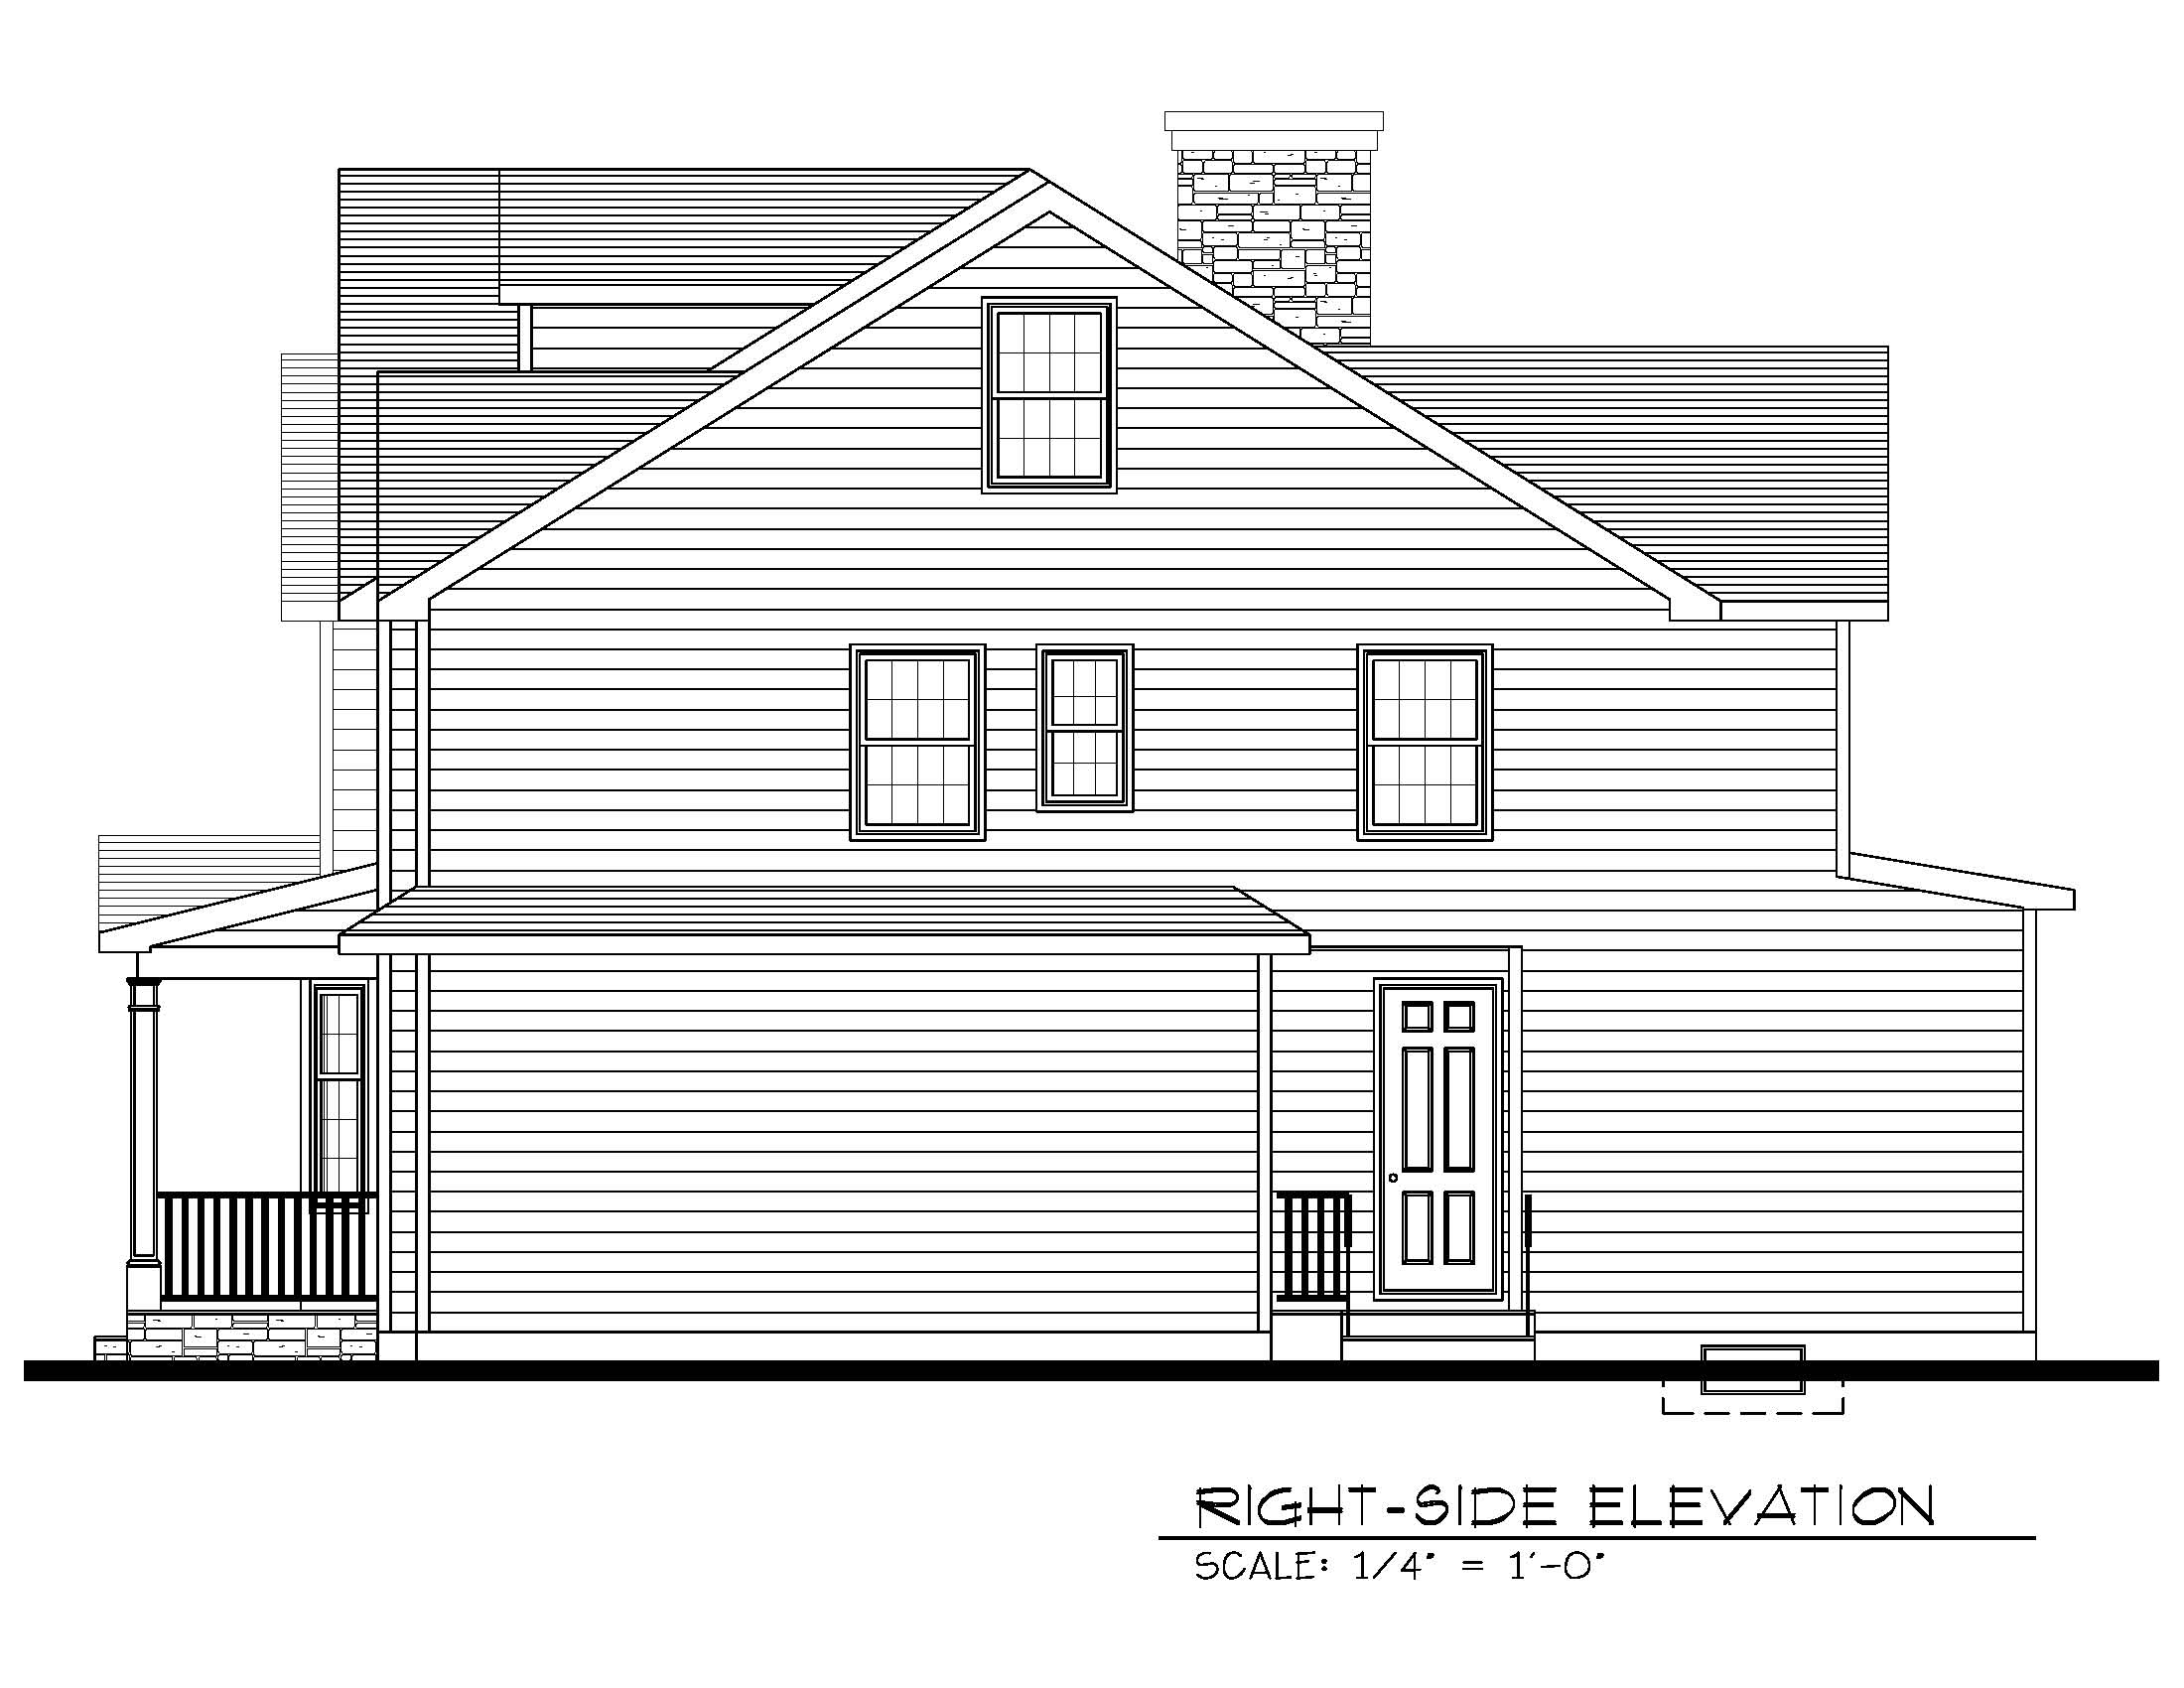 843 Right Side Elevation